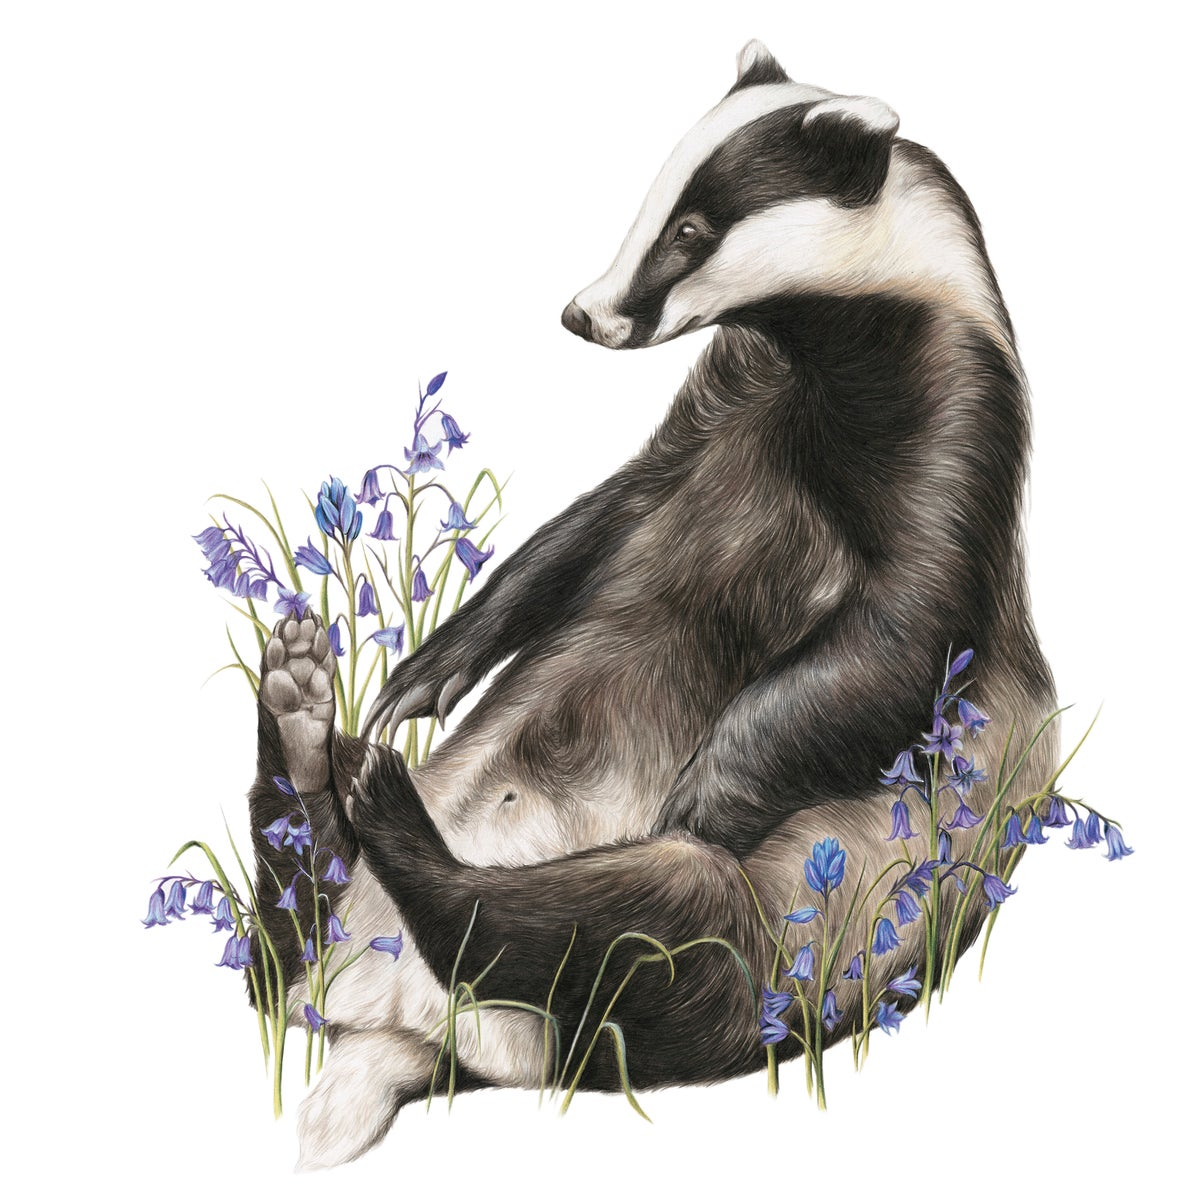 Image of 'Bella Bluebell' Limited Edition Print